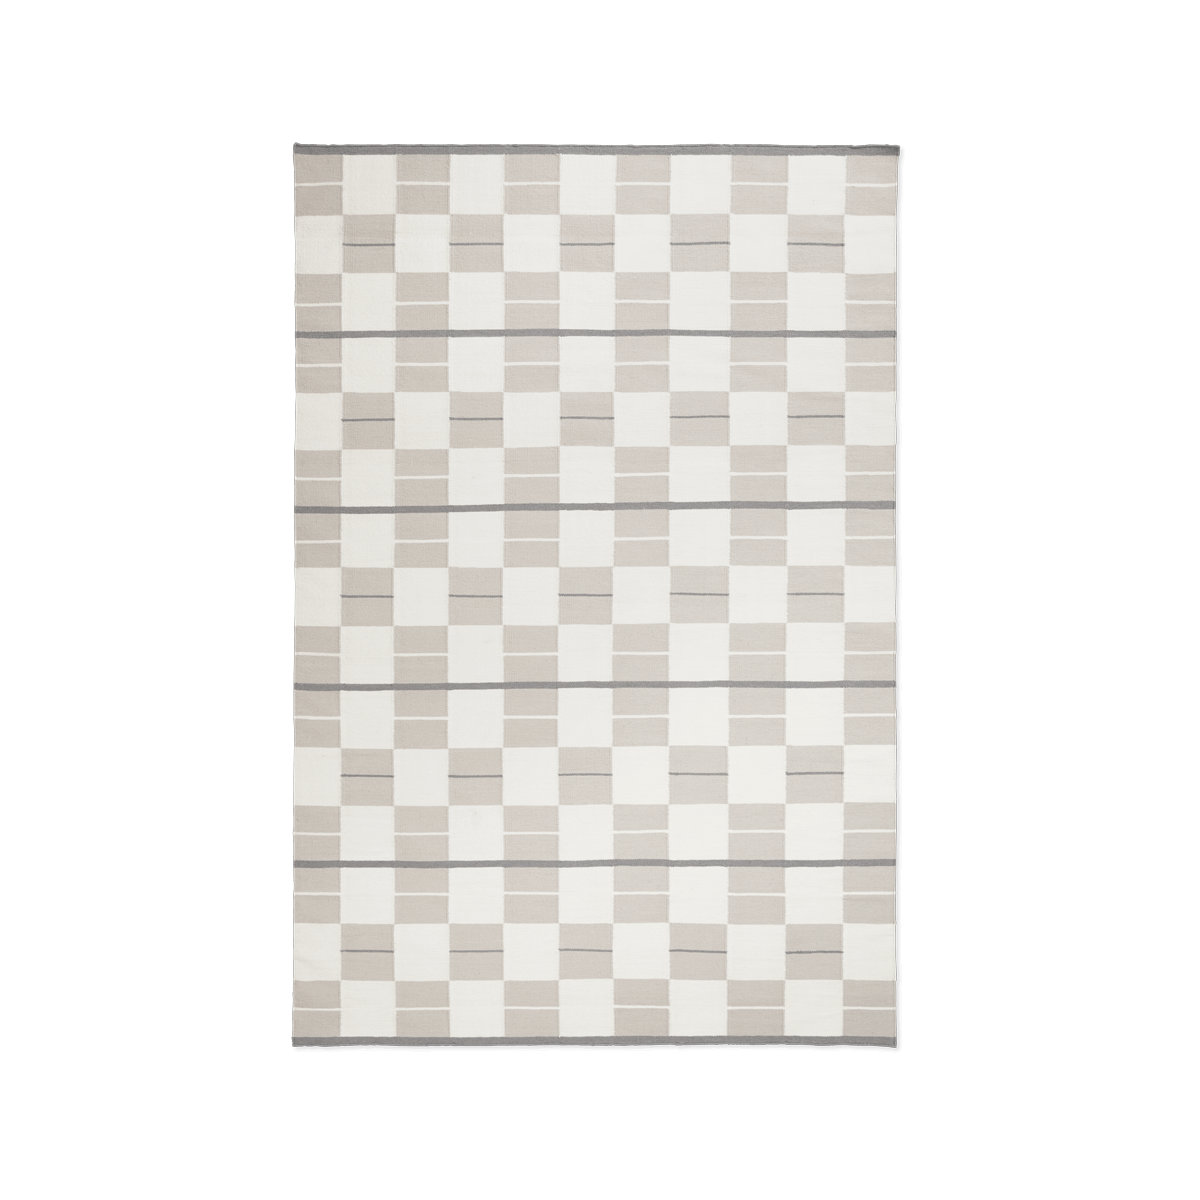 Product image of the flatweave rug Båstad in the color Cream. It is a patterned rug combining striped and squares in different beige hues.